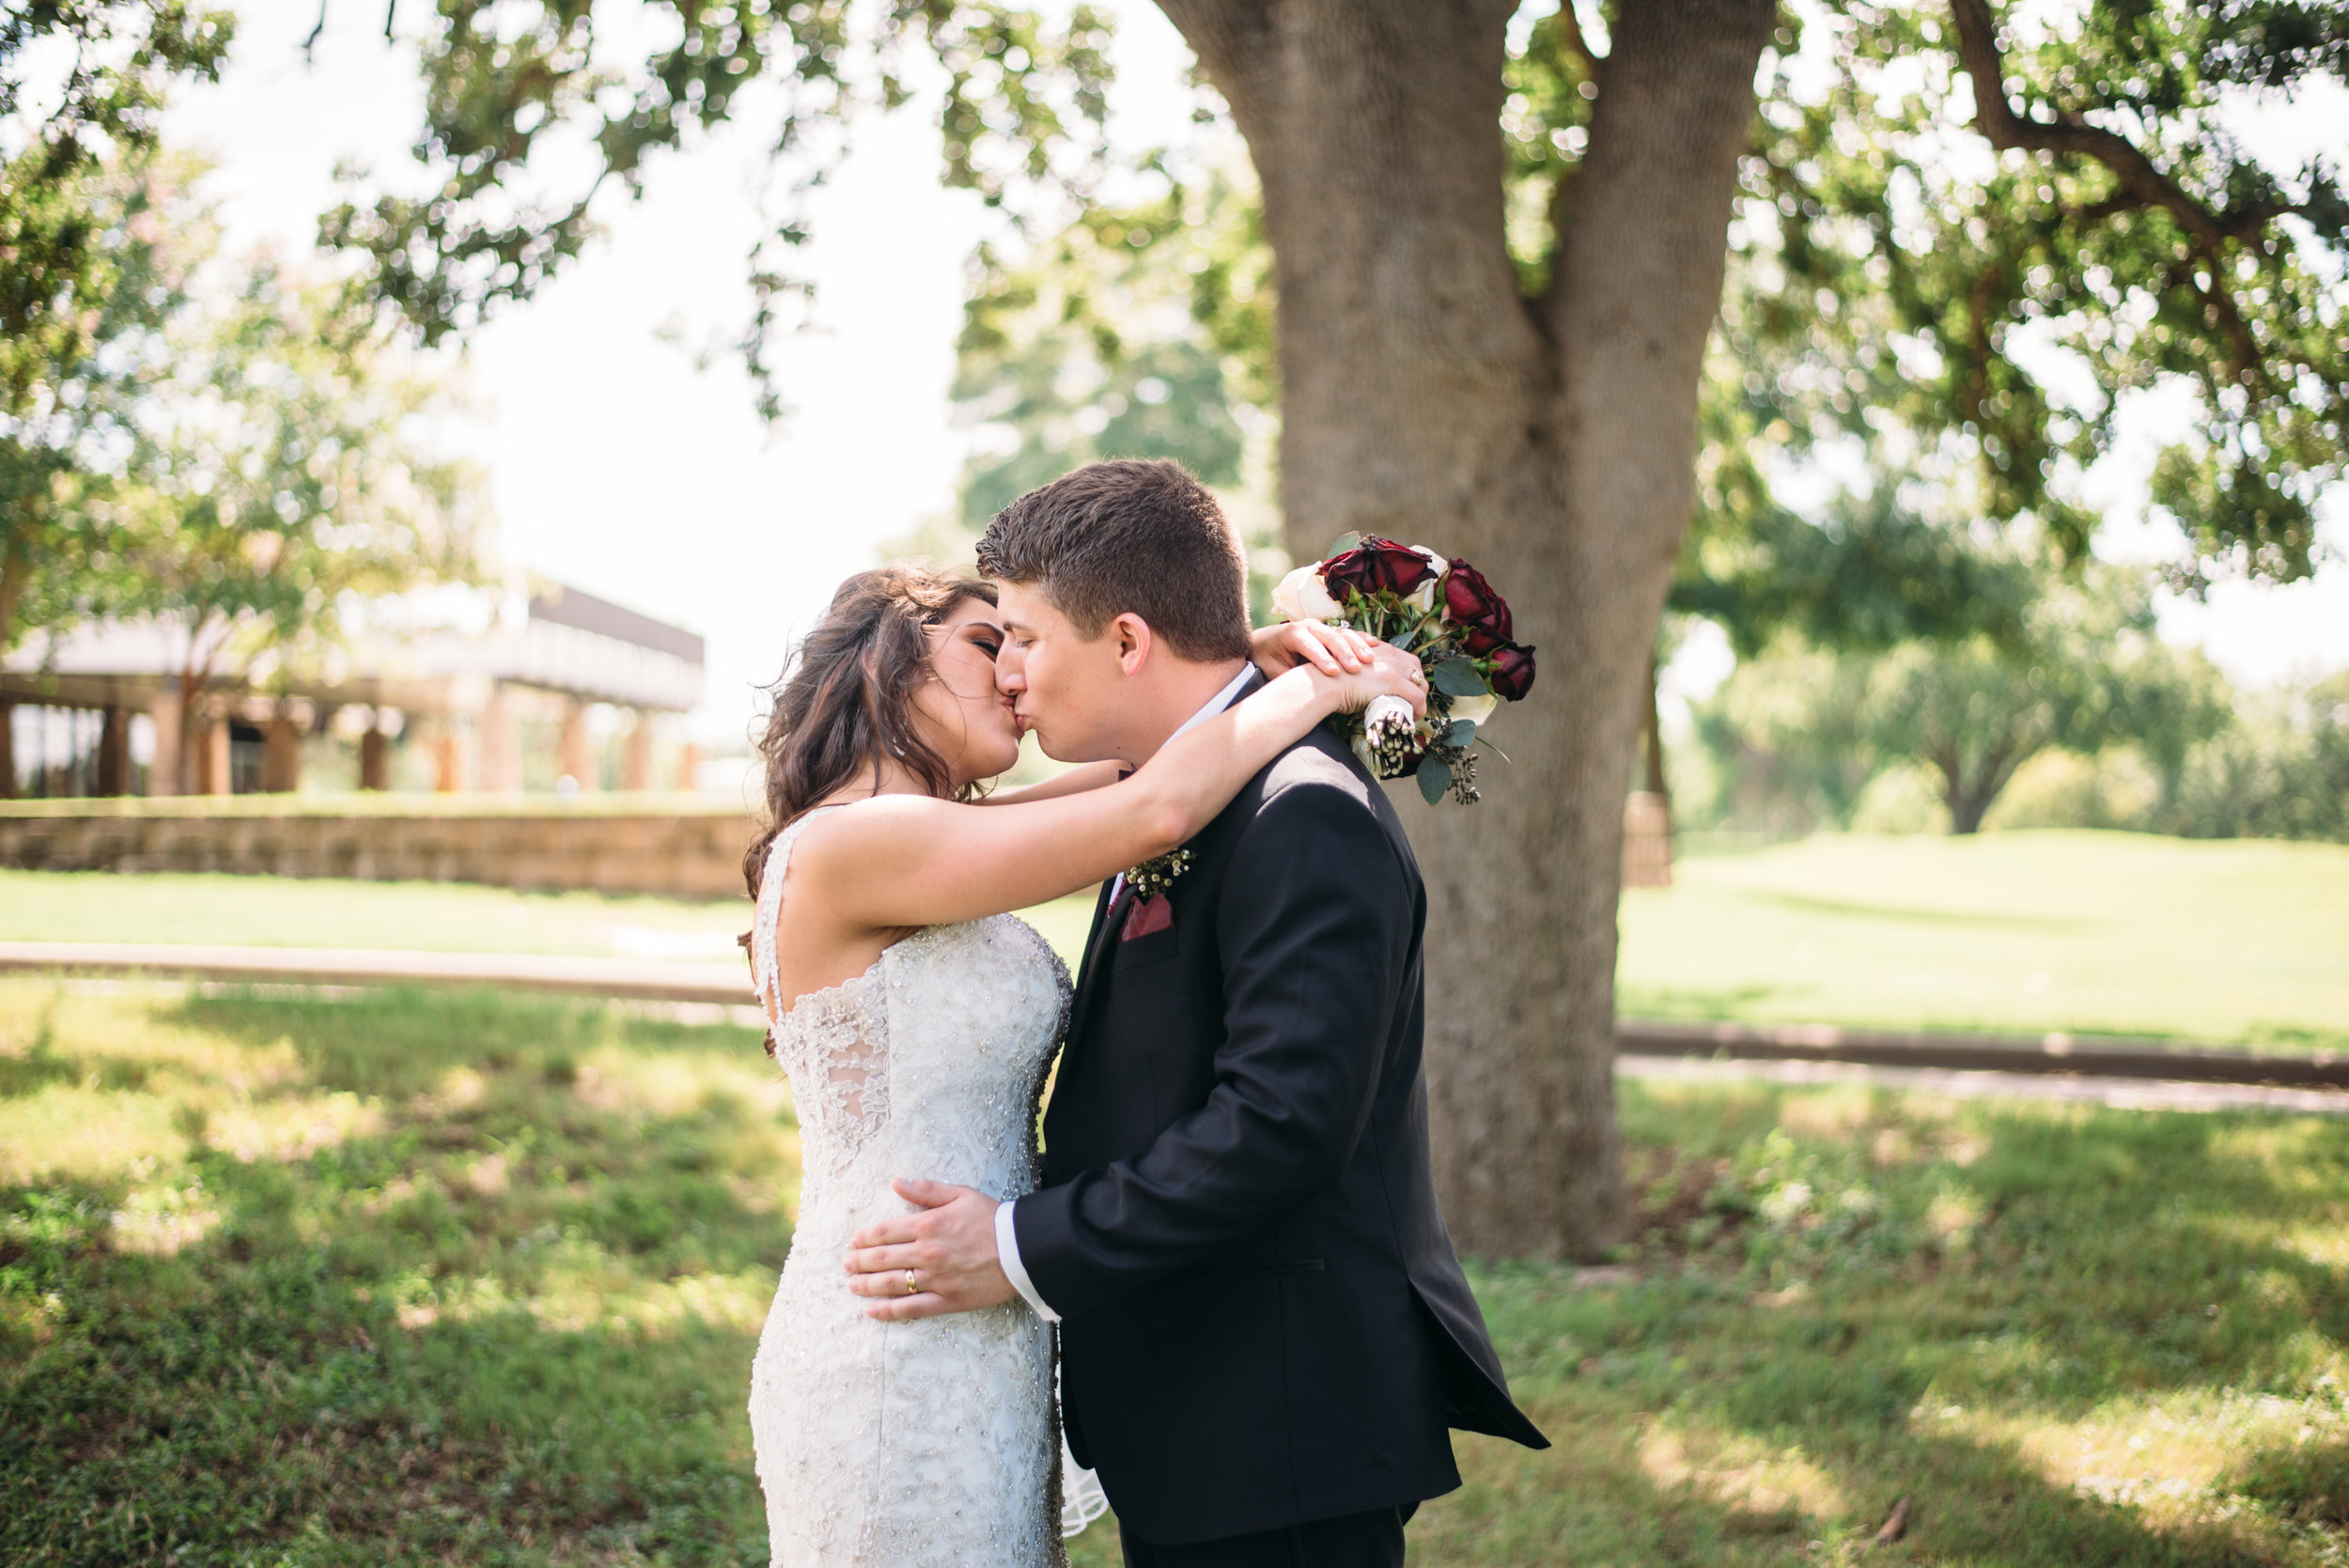 PhillipsEventCenter-AggieWedding-CollegeStationPhotographer_28.jpg